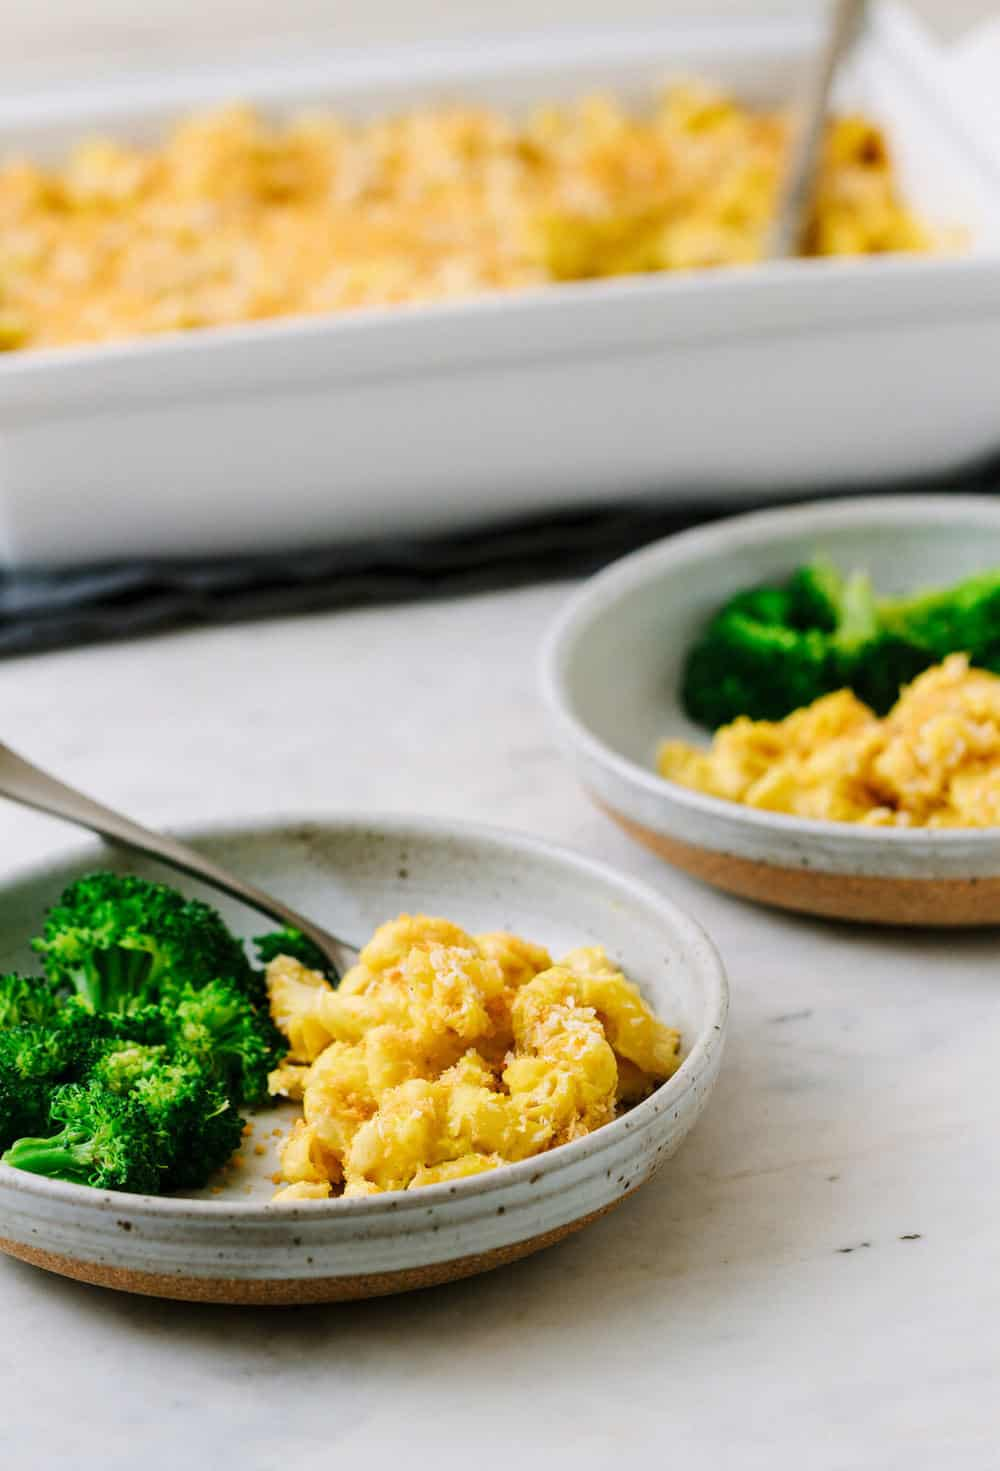 creamy vegan mac and cheese bake in a bowl with steamed broccoli